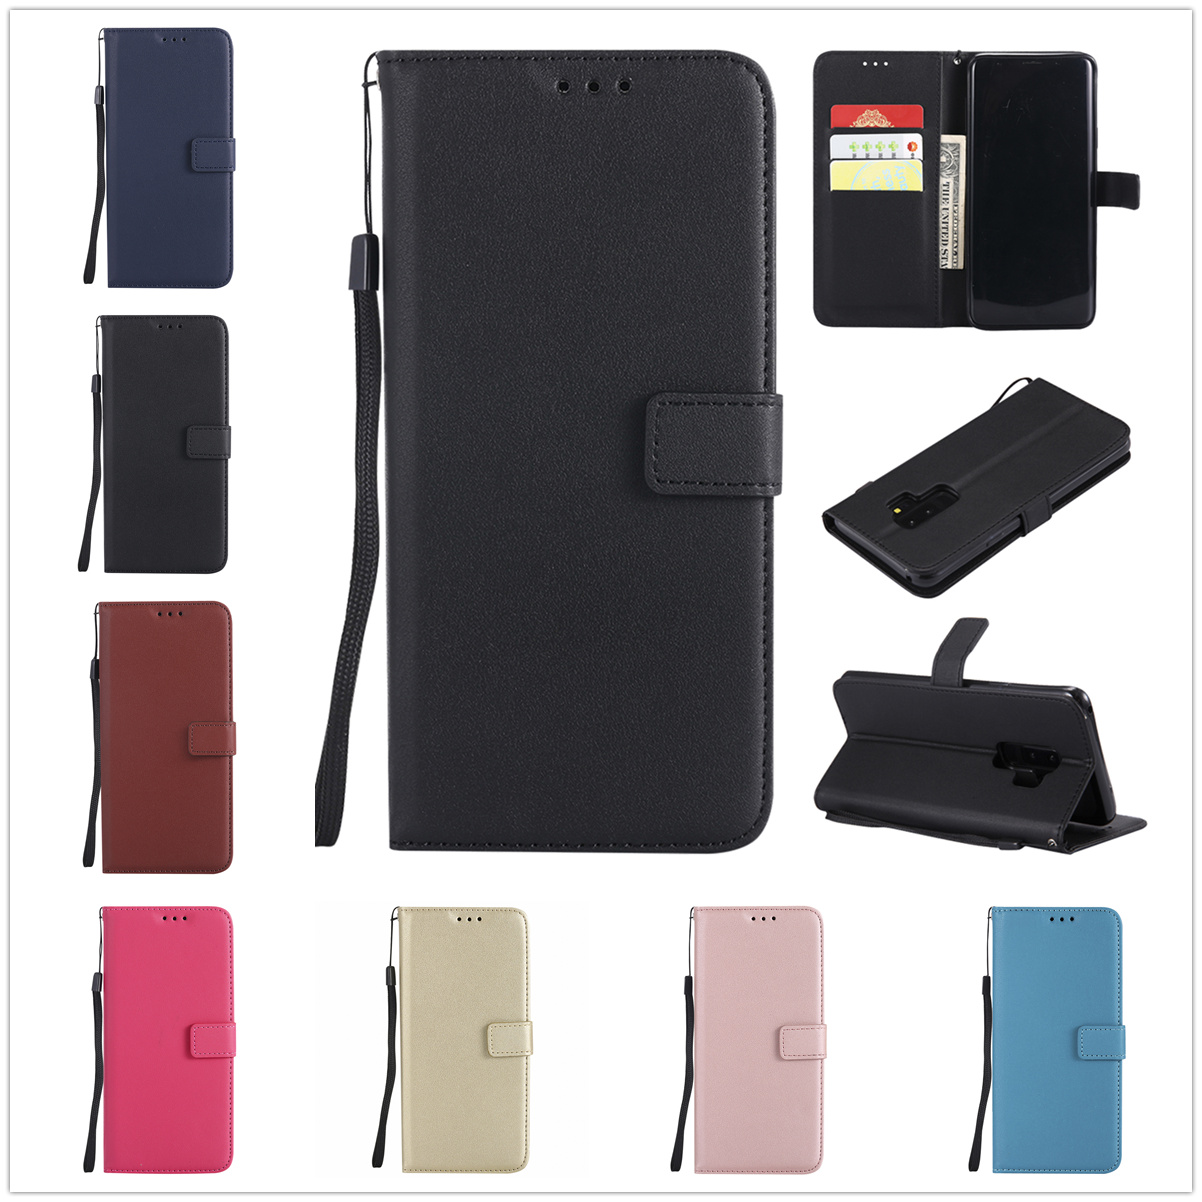 Leather Phone Case For Samsung Galaxy A6 A8 Plus J2 J4 J6 J8 2018 J1 J3 J5 J7 2016 A7 A3 A5 2017 Flip Wallet Card Holder Cover(China)